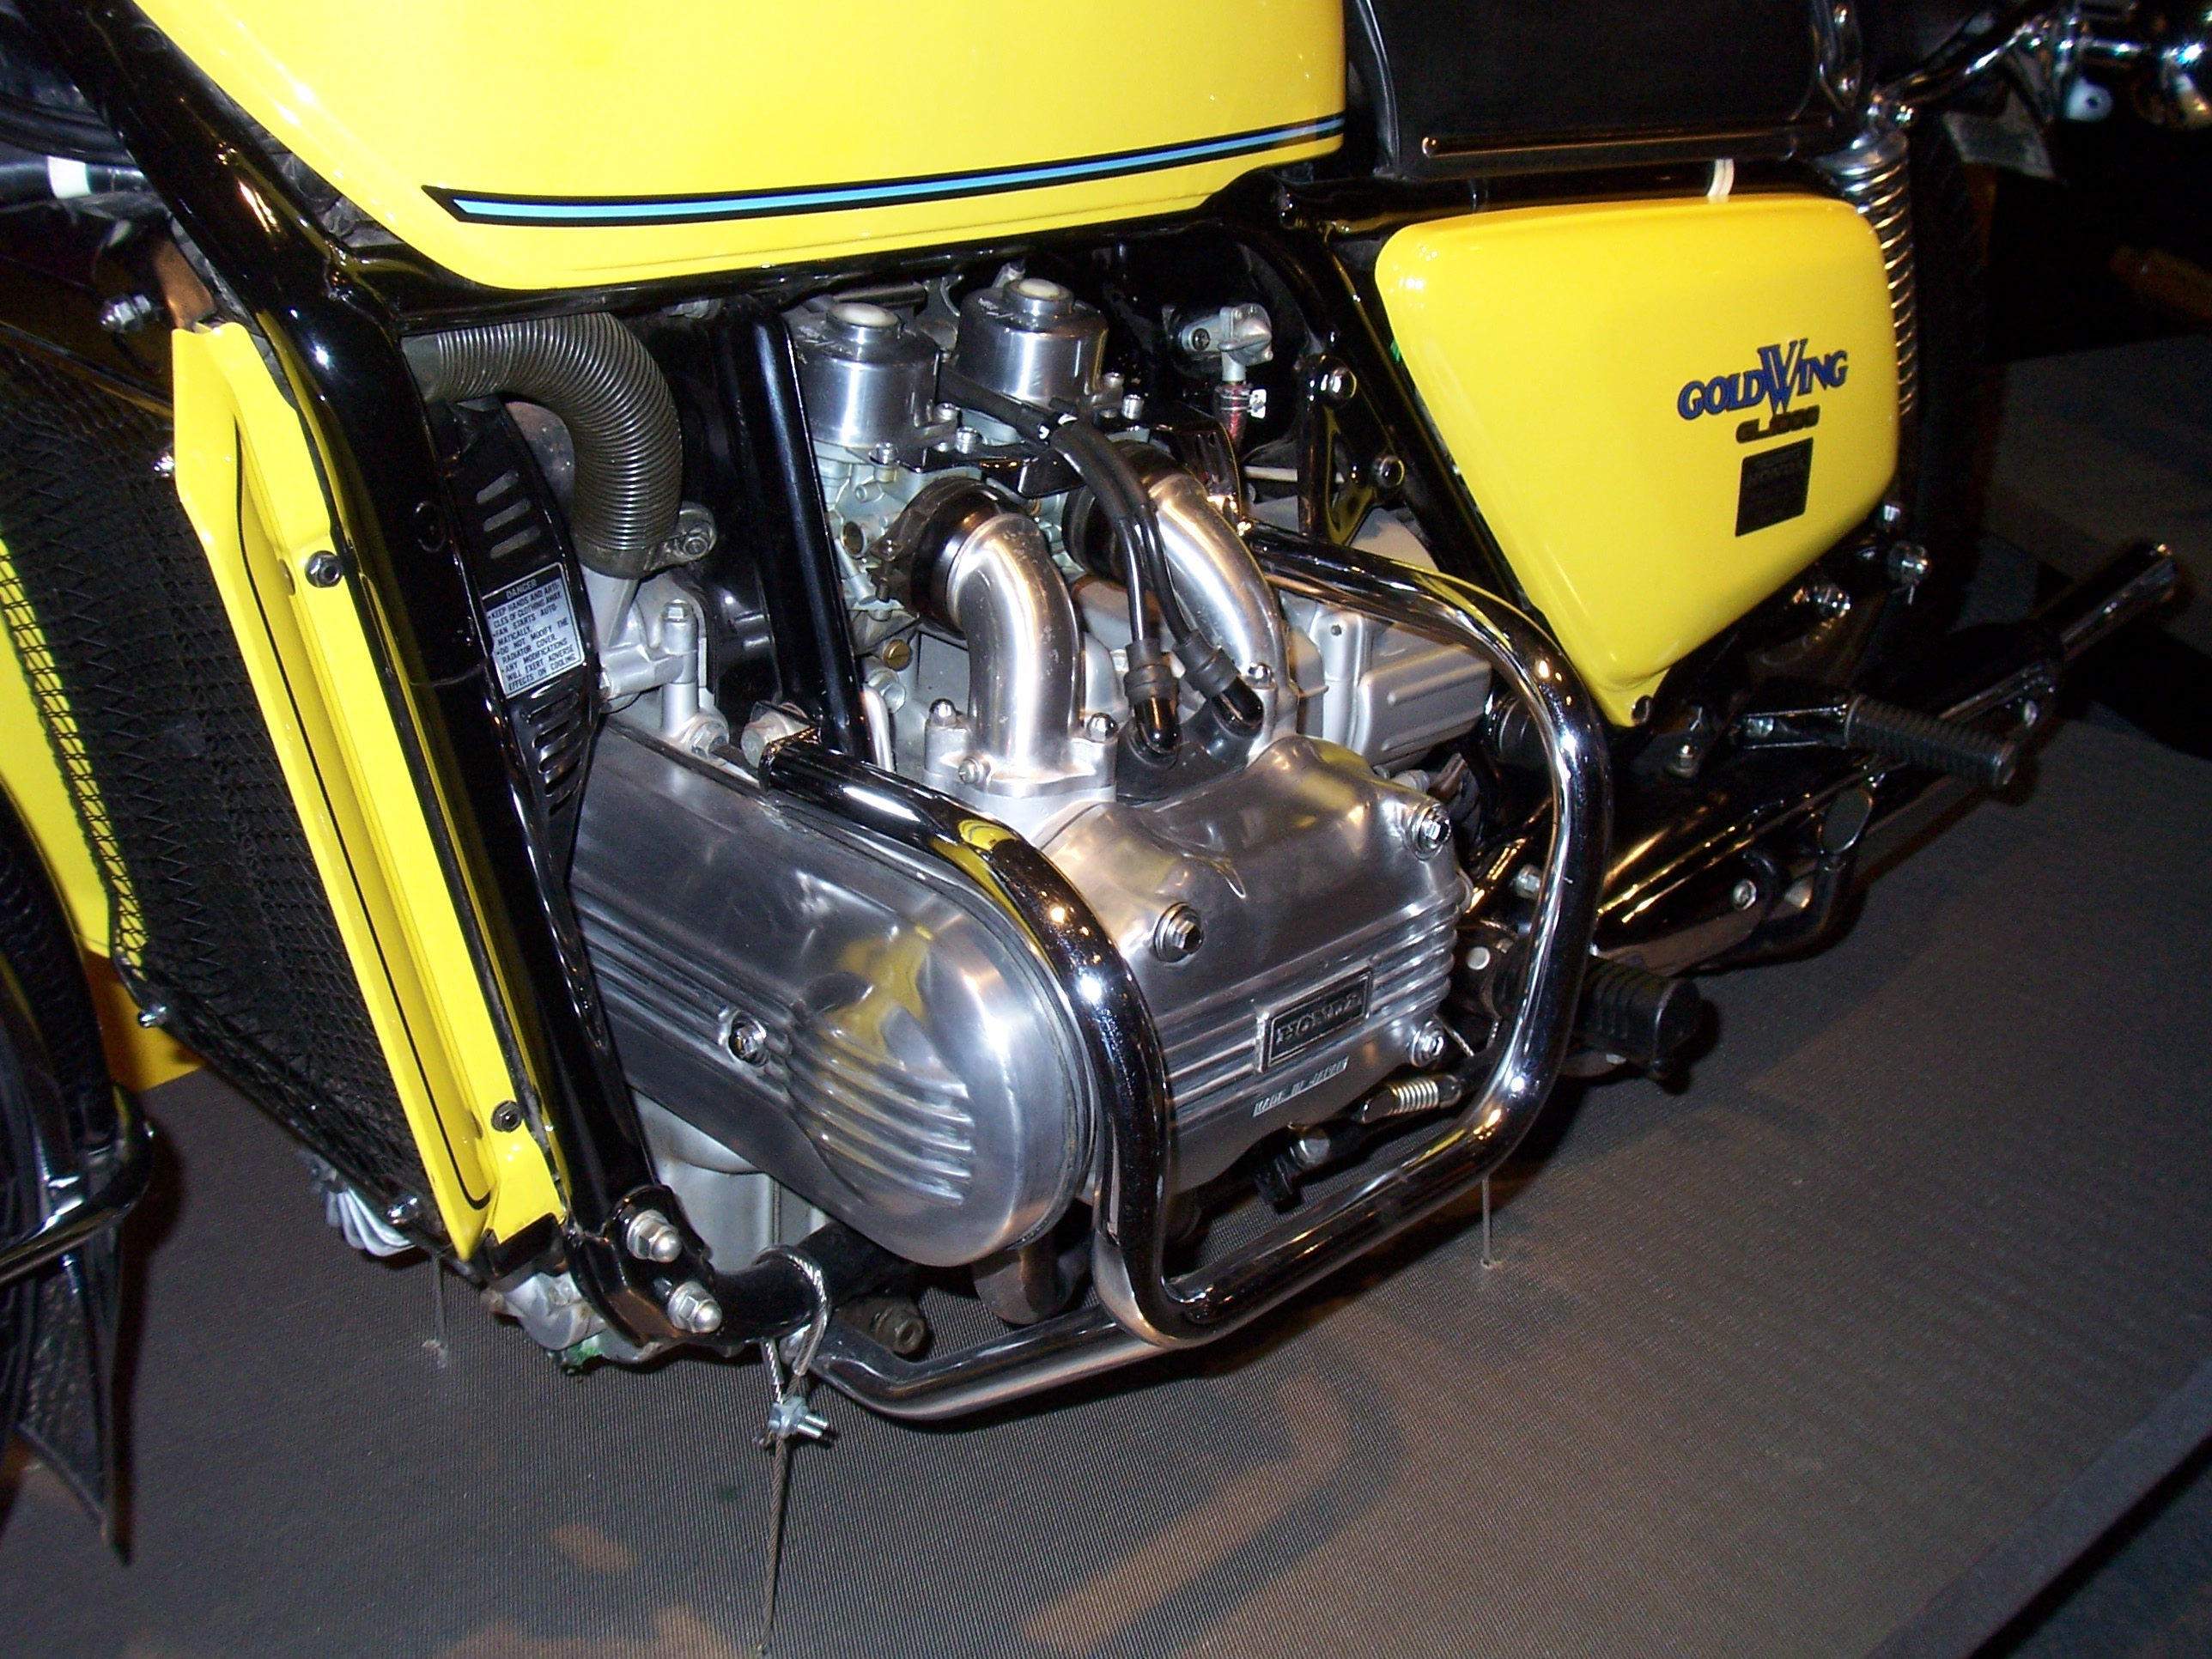 FileHonda Goldwing GL1000 Engine